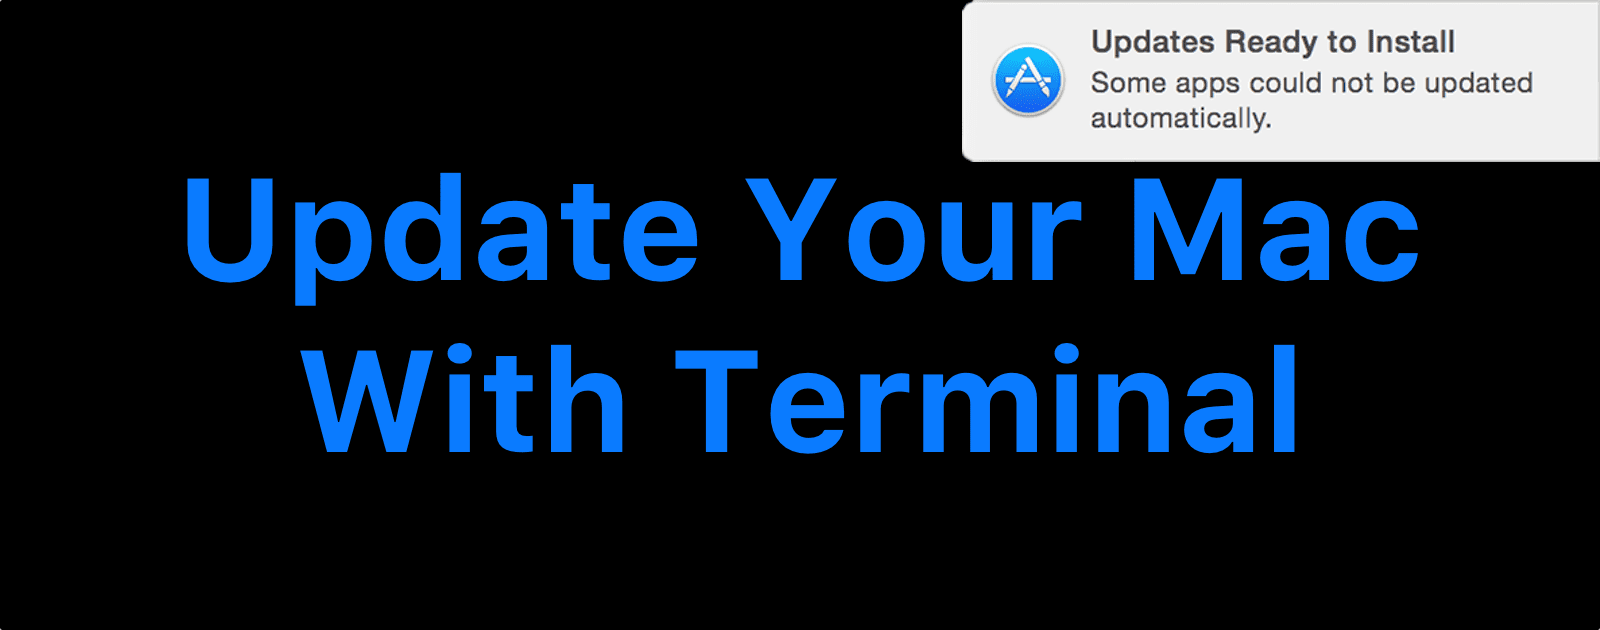 macOS: How to Update Your Mac in the Terminal - The Mac Observer